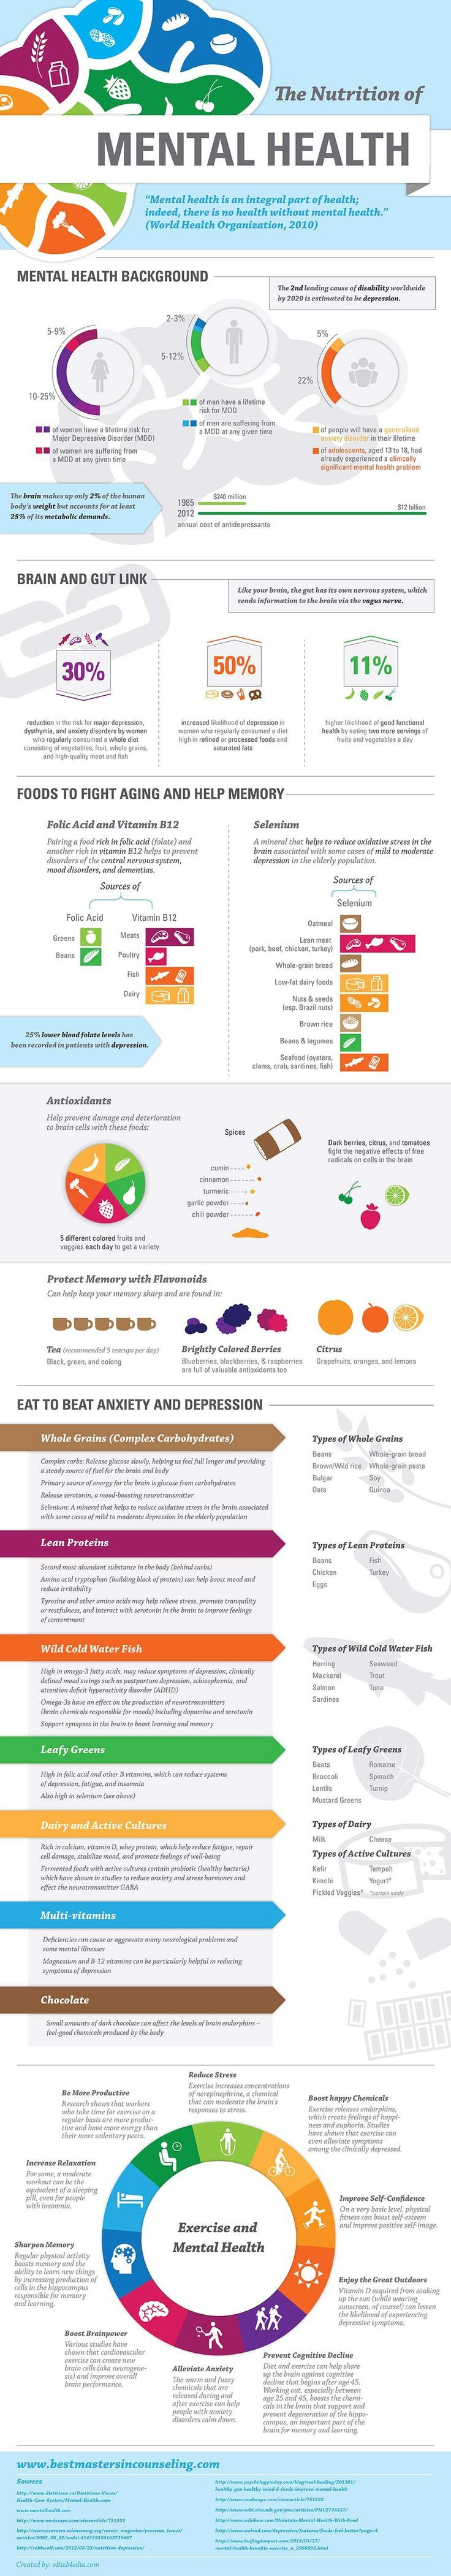 "the nutrition of mental health infographic | according to the world health organization, ""mental health is an integral part of health; indeed, there is no health without mental health."""